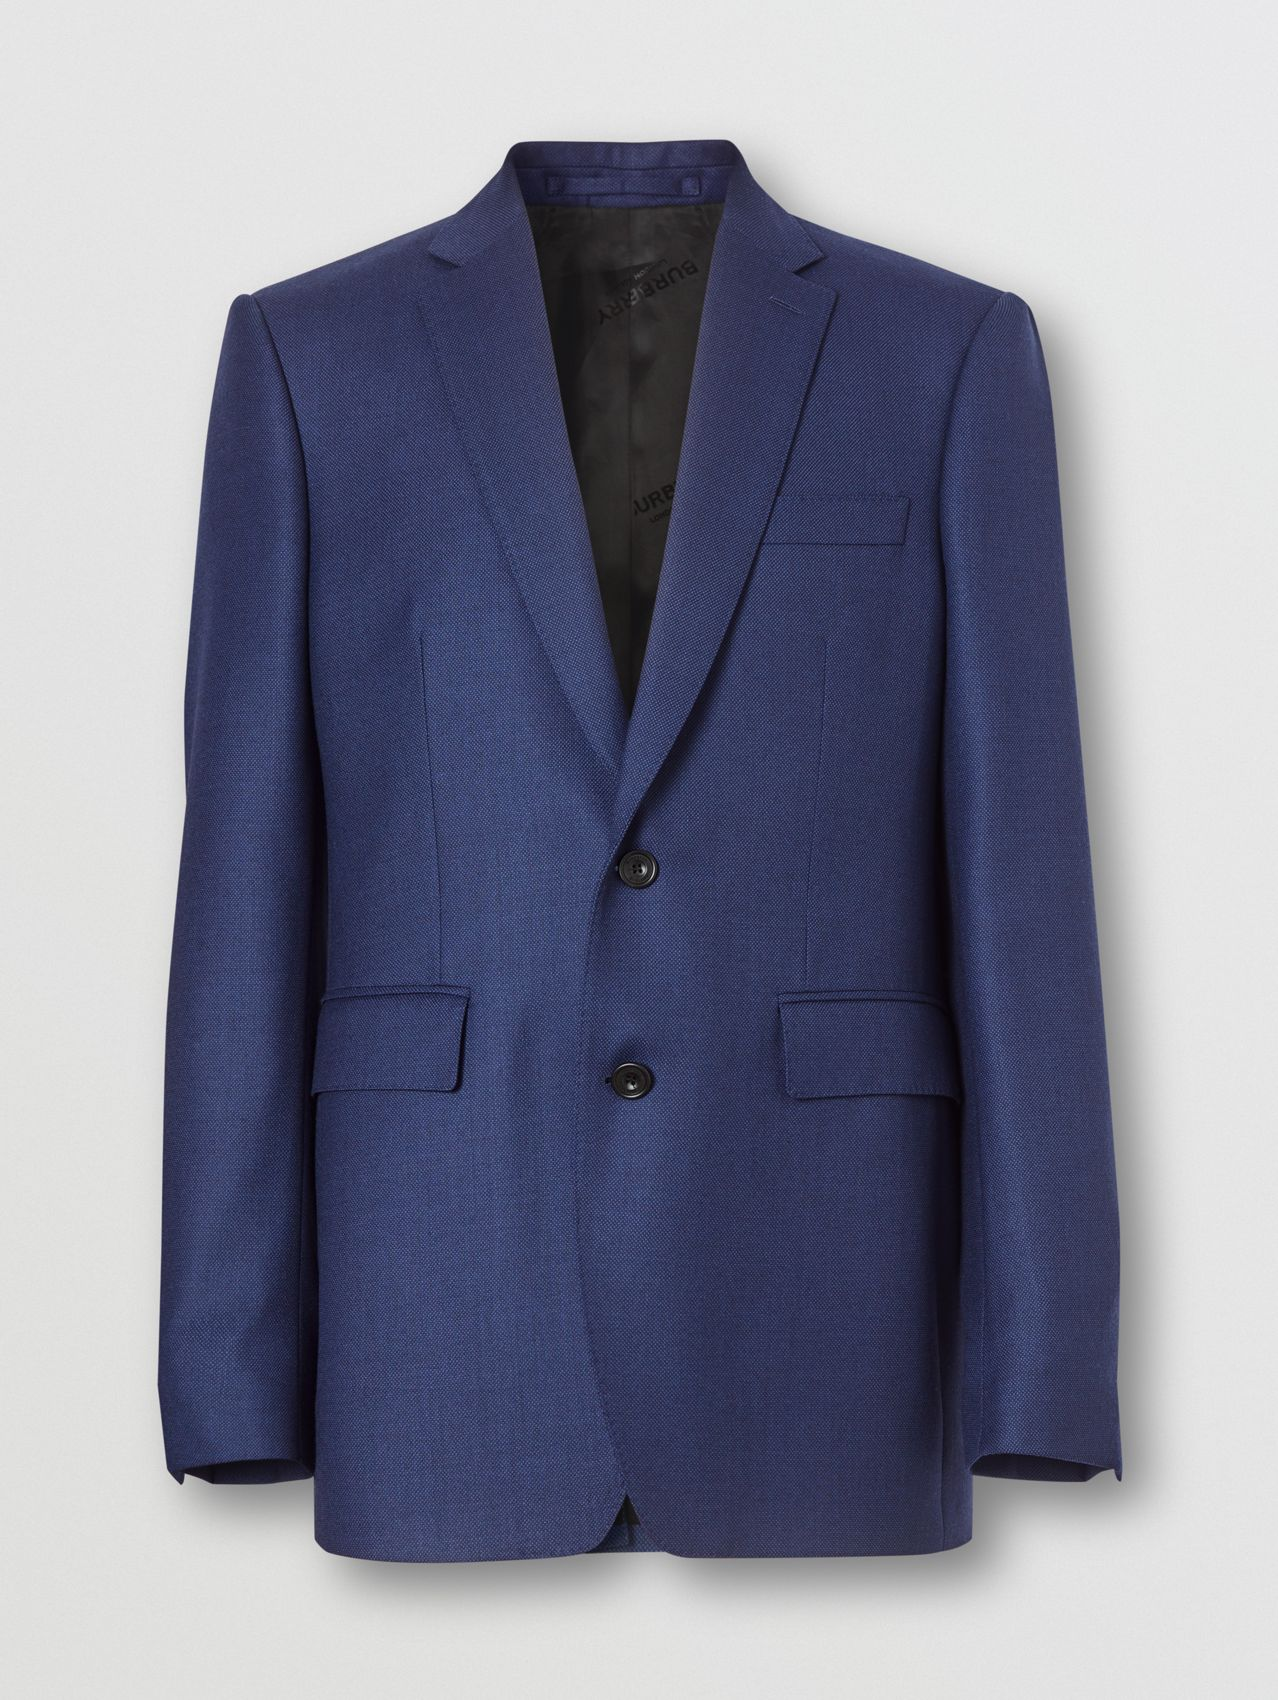 Classic Fit Birdseye Wool Tailored Jacket in Bright Navy